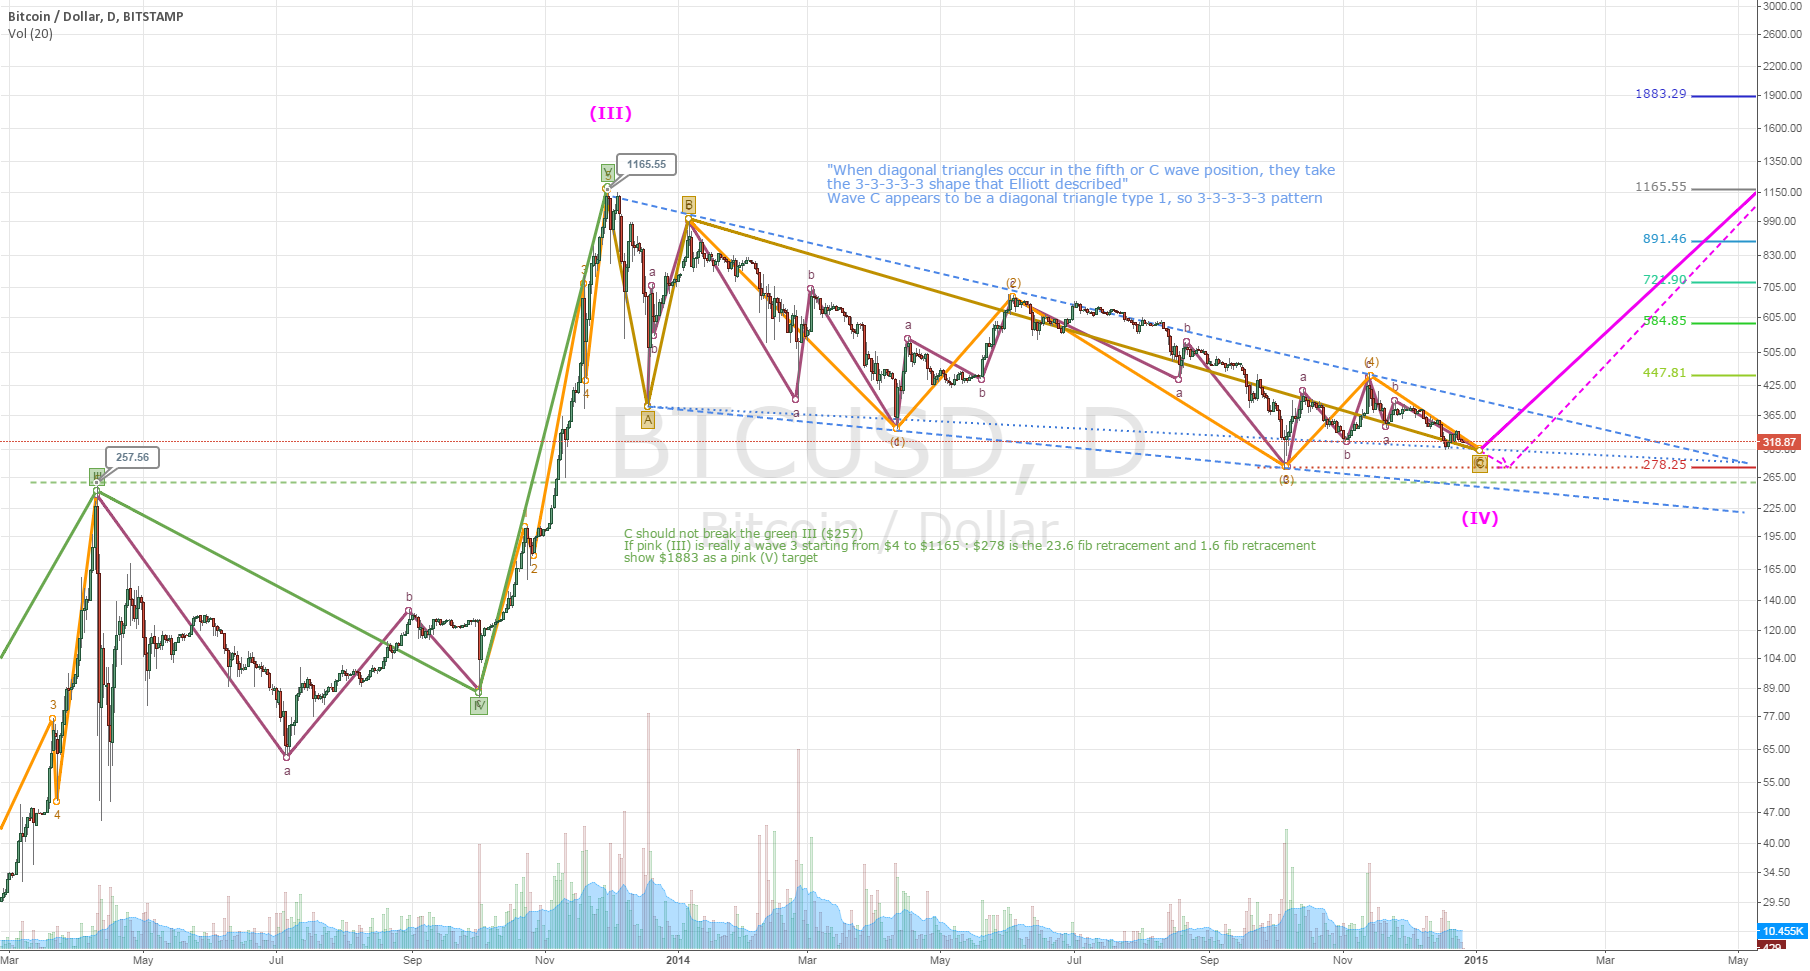 End of 2014 bear market prediction - using Elliott Waves